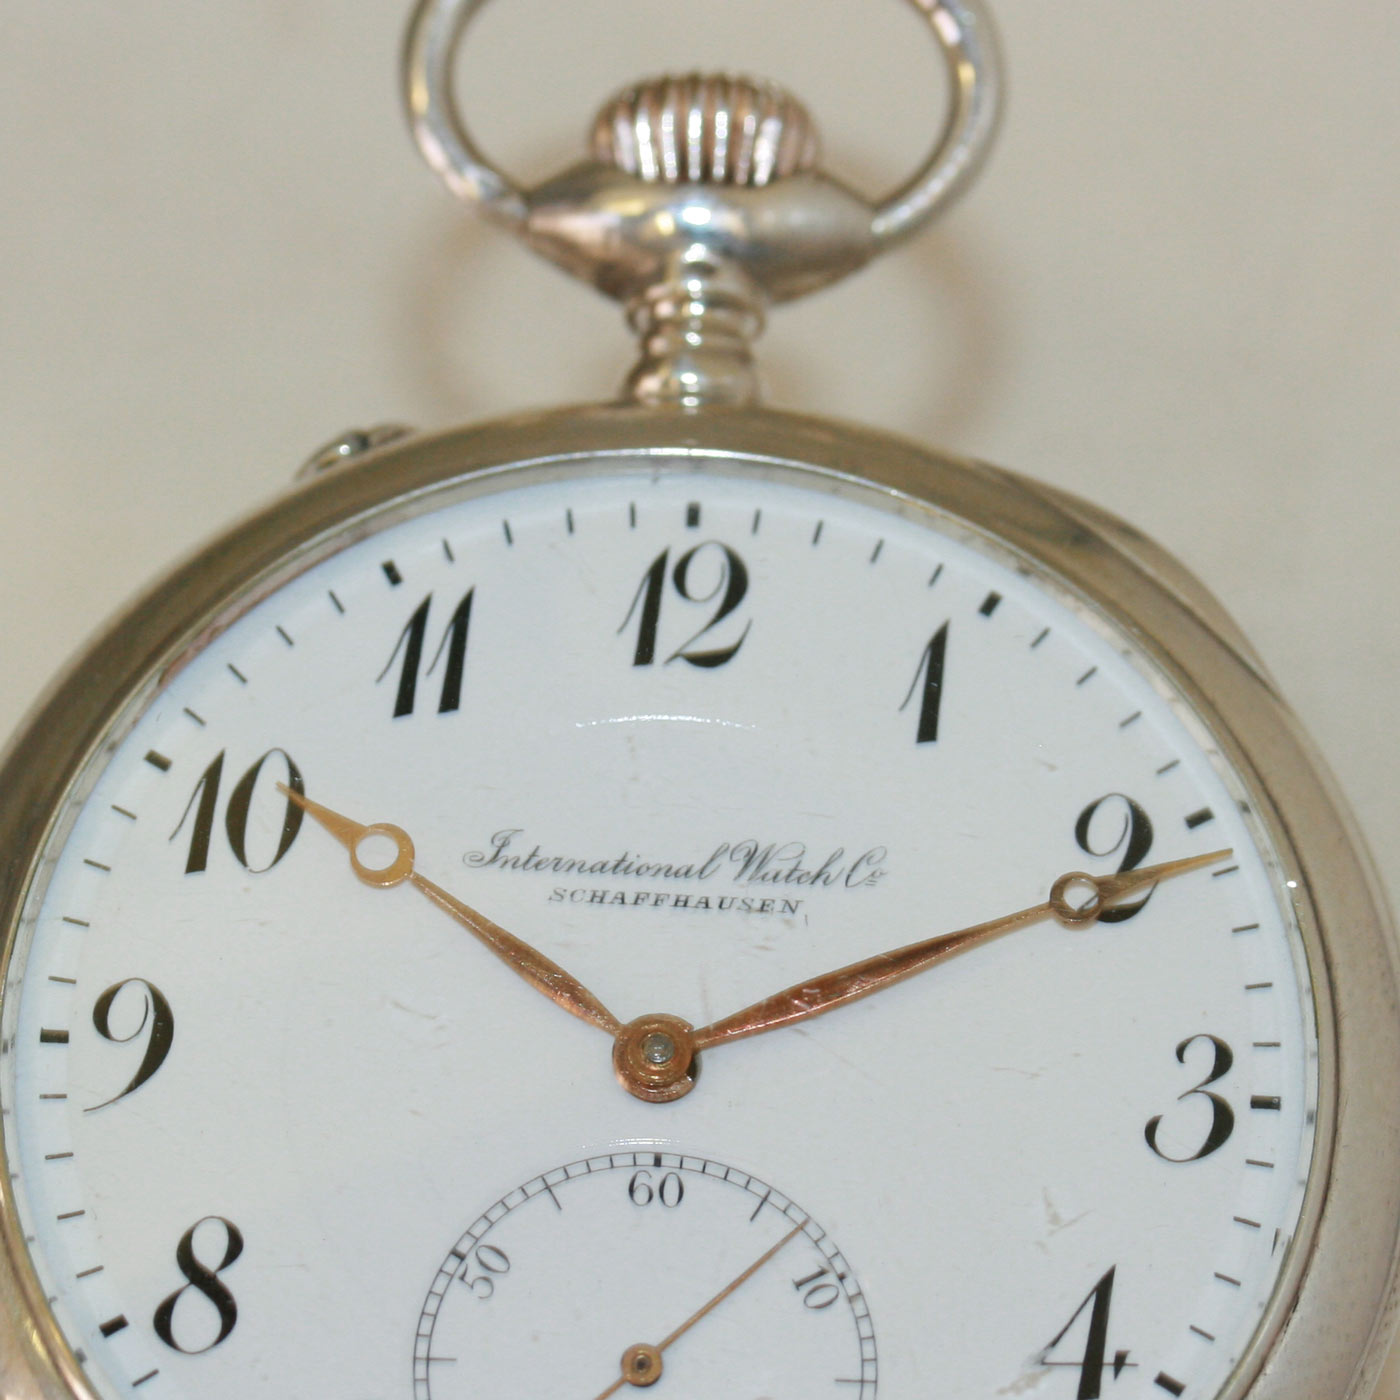 buy iwc pocket sold items sold pocket watches